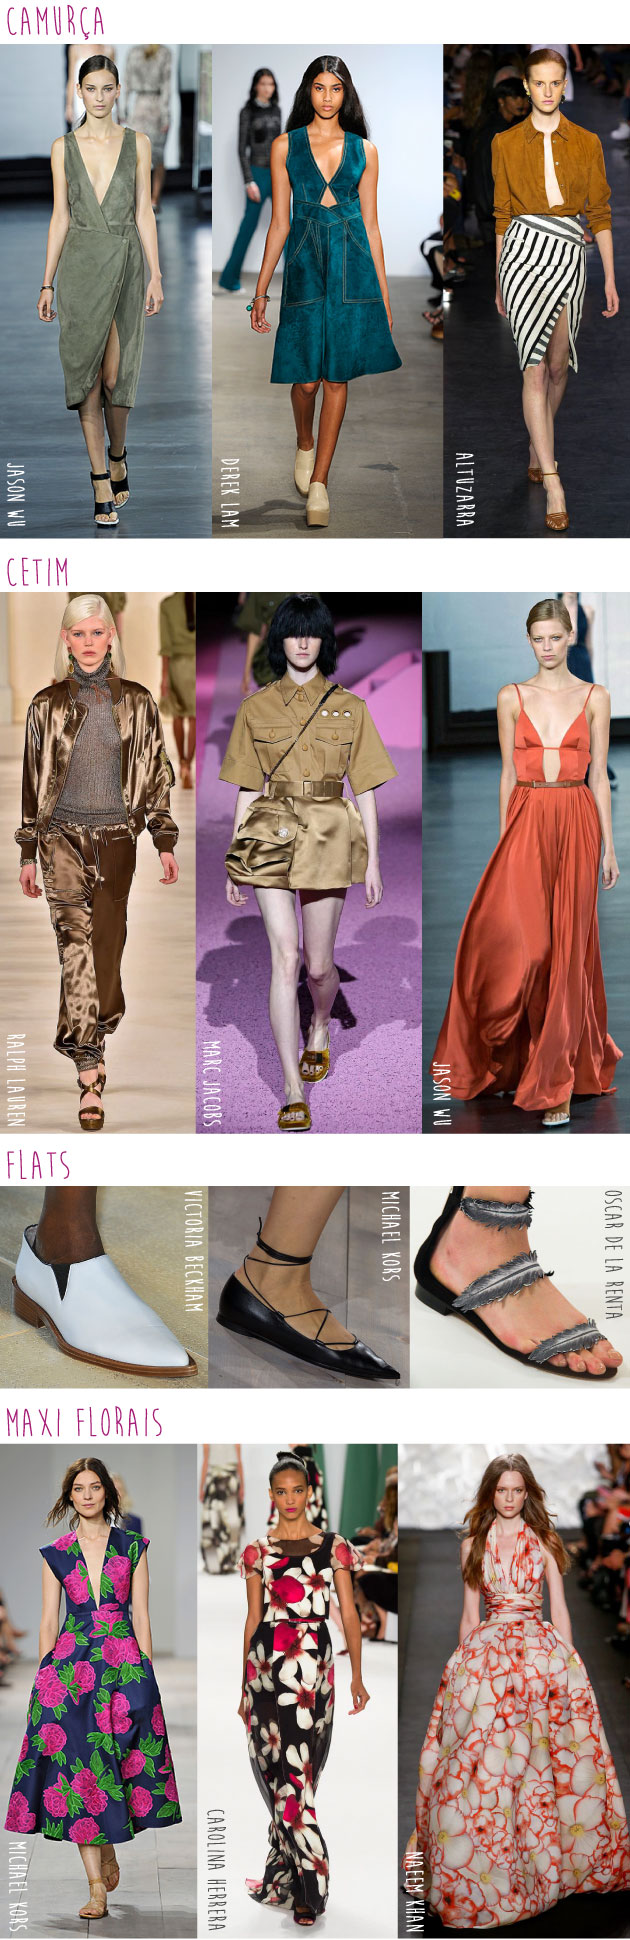 trend-report-tendencias-nyfw-new-york-fashion-week-spring-2015-primavera-looks-desfiles-moda-1